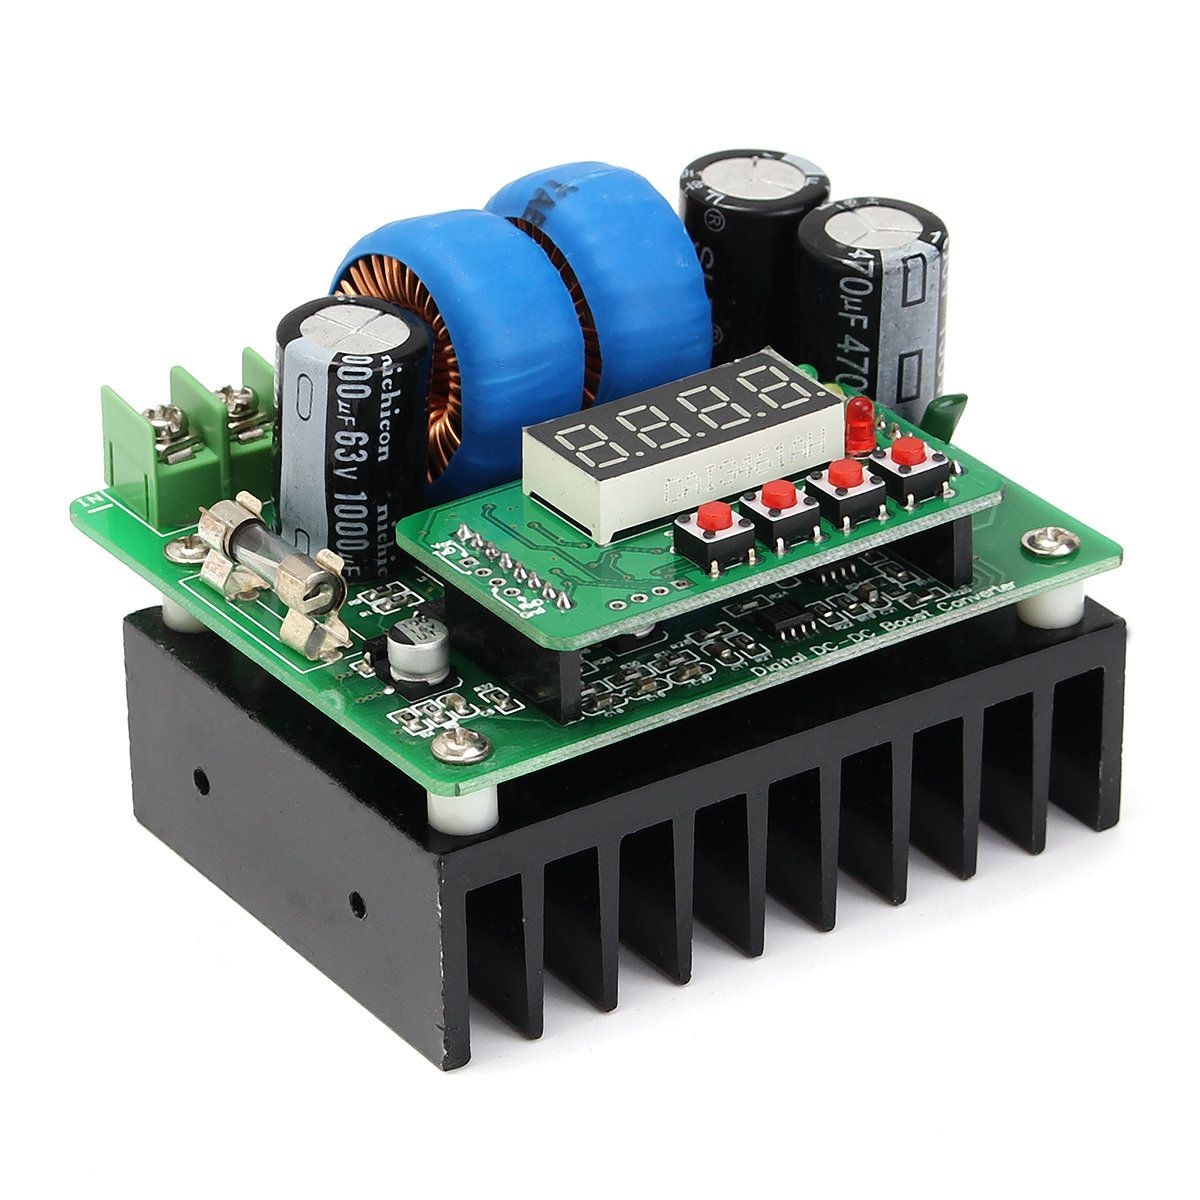 Us2186 400w Dc 8v 80v 10a Digital Voltage Current Boost Module 3pcs 12v Delay Timer Relay Turn On Off Controlled Step Up Power Supply 85 X 75 60 Mm Small Volume Large Booster